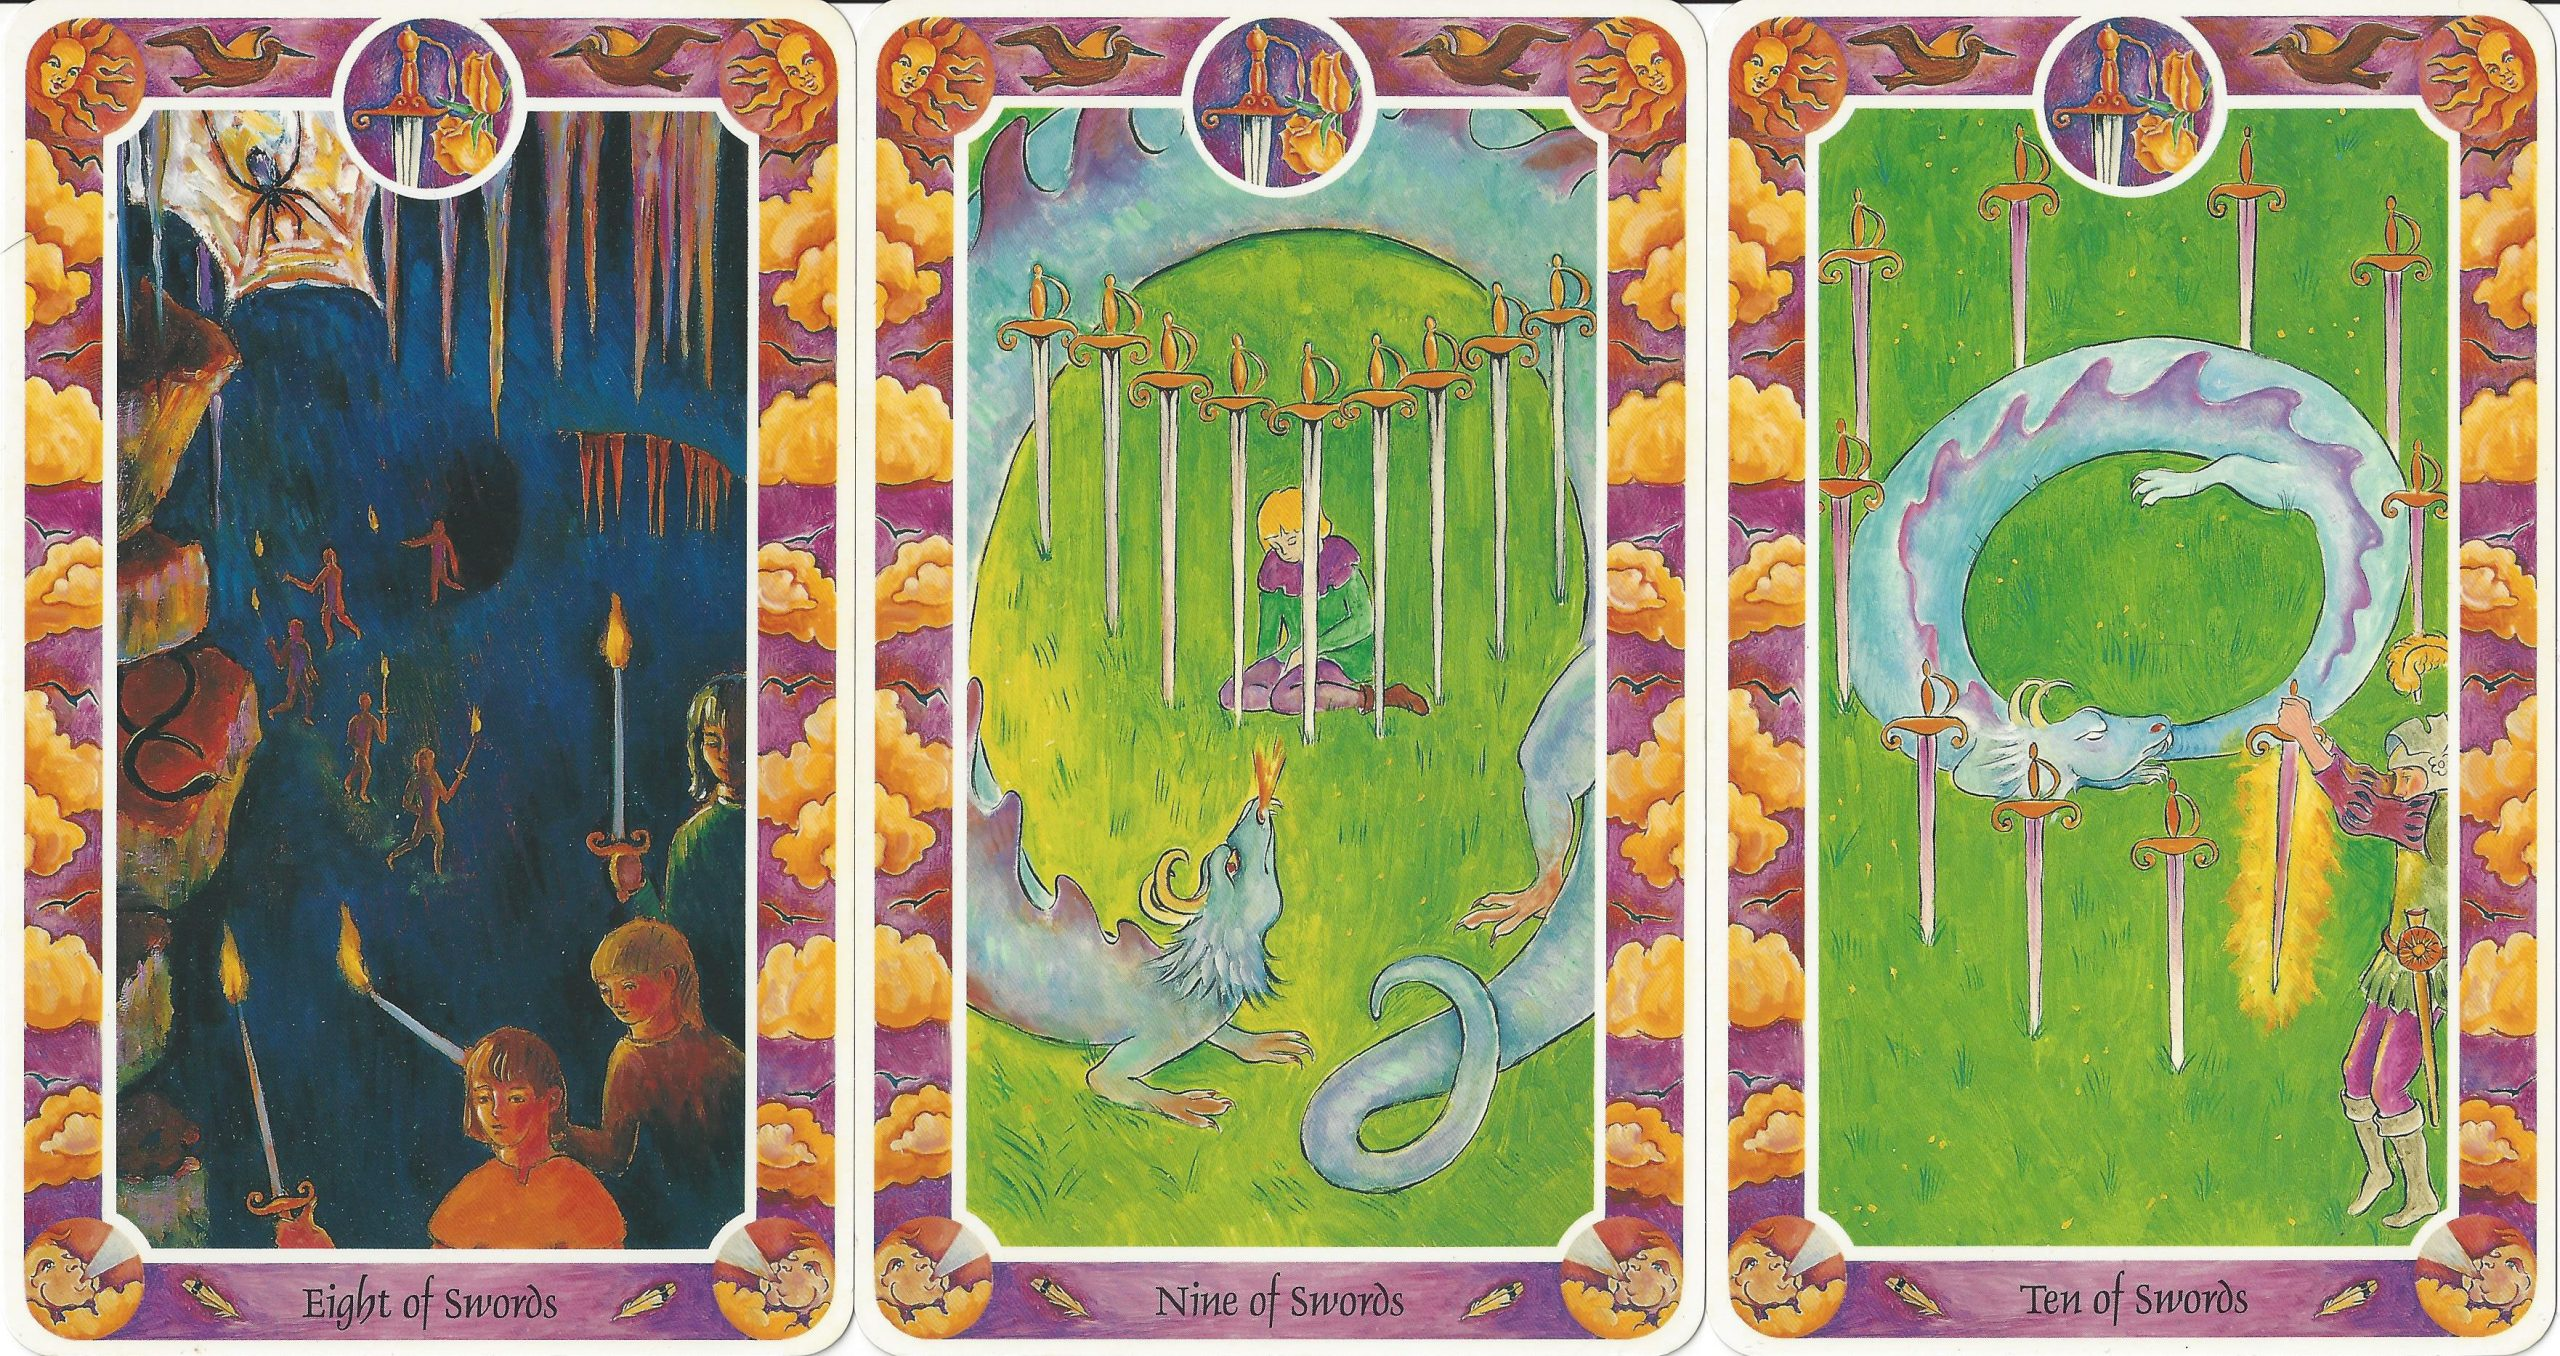 """""""Eight of Swords,"""" """"Nine of Swords,"""" and """"Ten of Swords"""" from Inner Child Cards by Isha Lerner, Mark Lerner, Christopher Guilfoil, Bear & Company, 1992."""